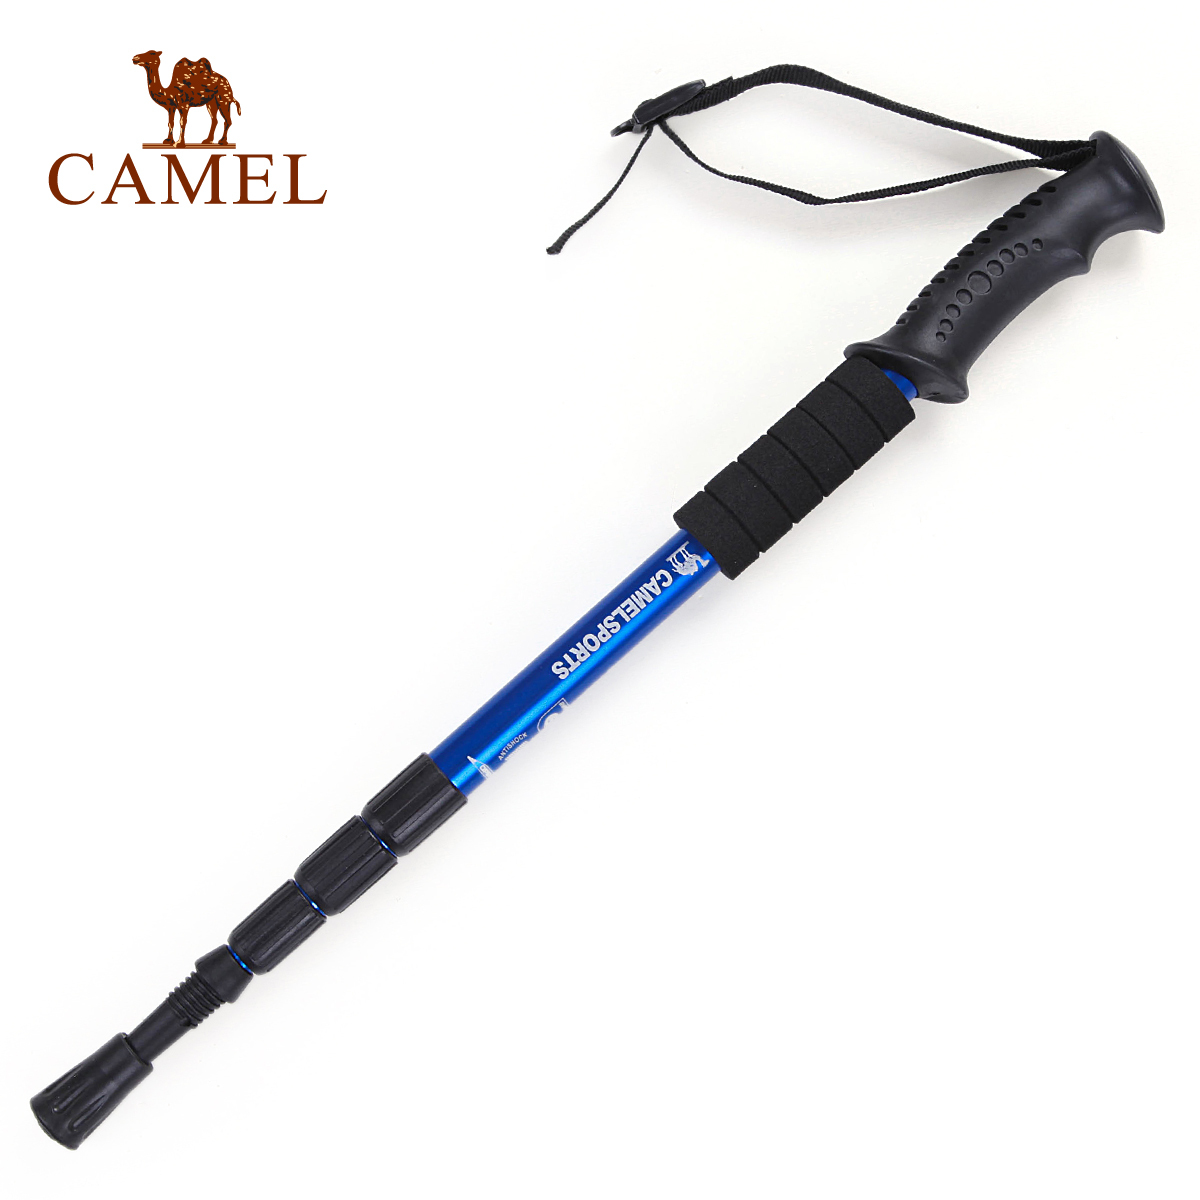 Camel trekking poles outside four ultra light canes a genuine straight shank special canes for hiking mountain climbing 2SA7D41